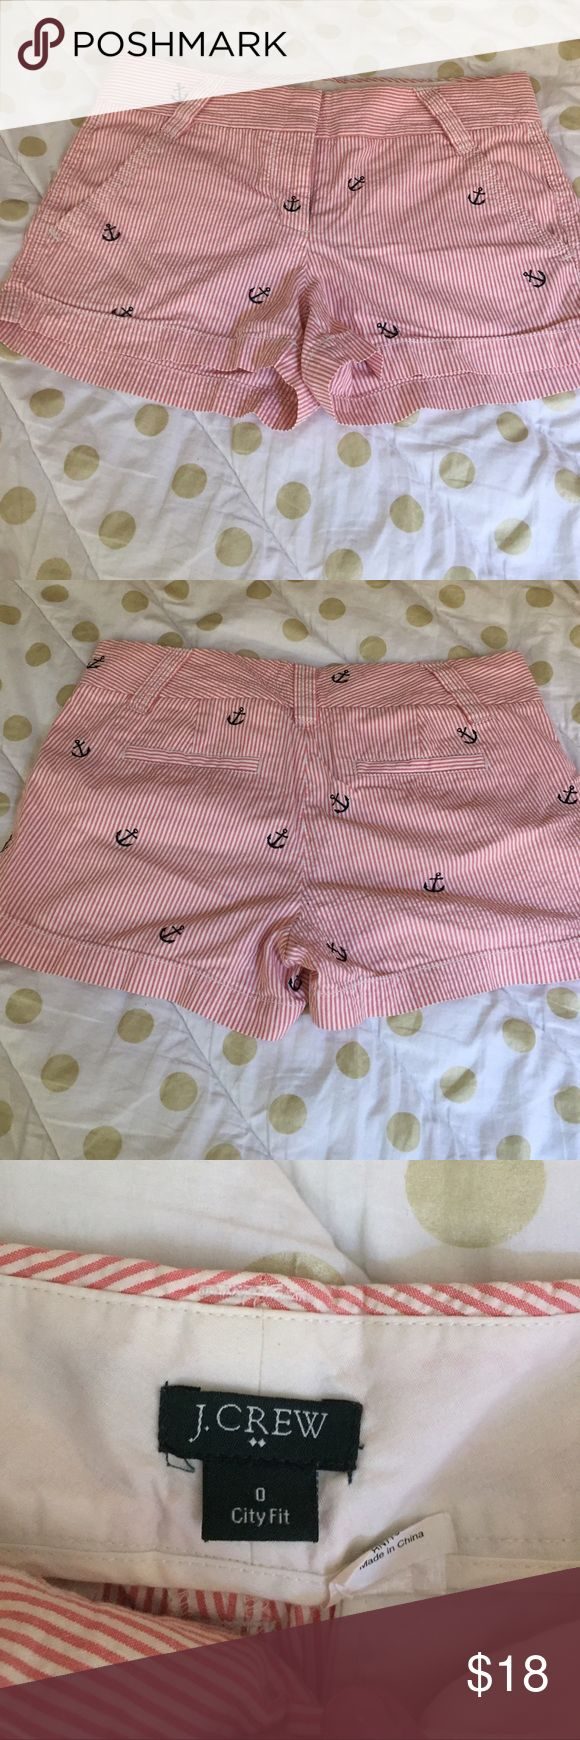 Jcrew embroidered anchor shorts Cute J.Crew red and white striped (navy) lobster embroidered shorts. Great used condition. J. Crew Shorts